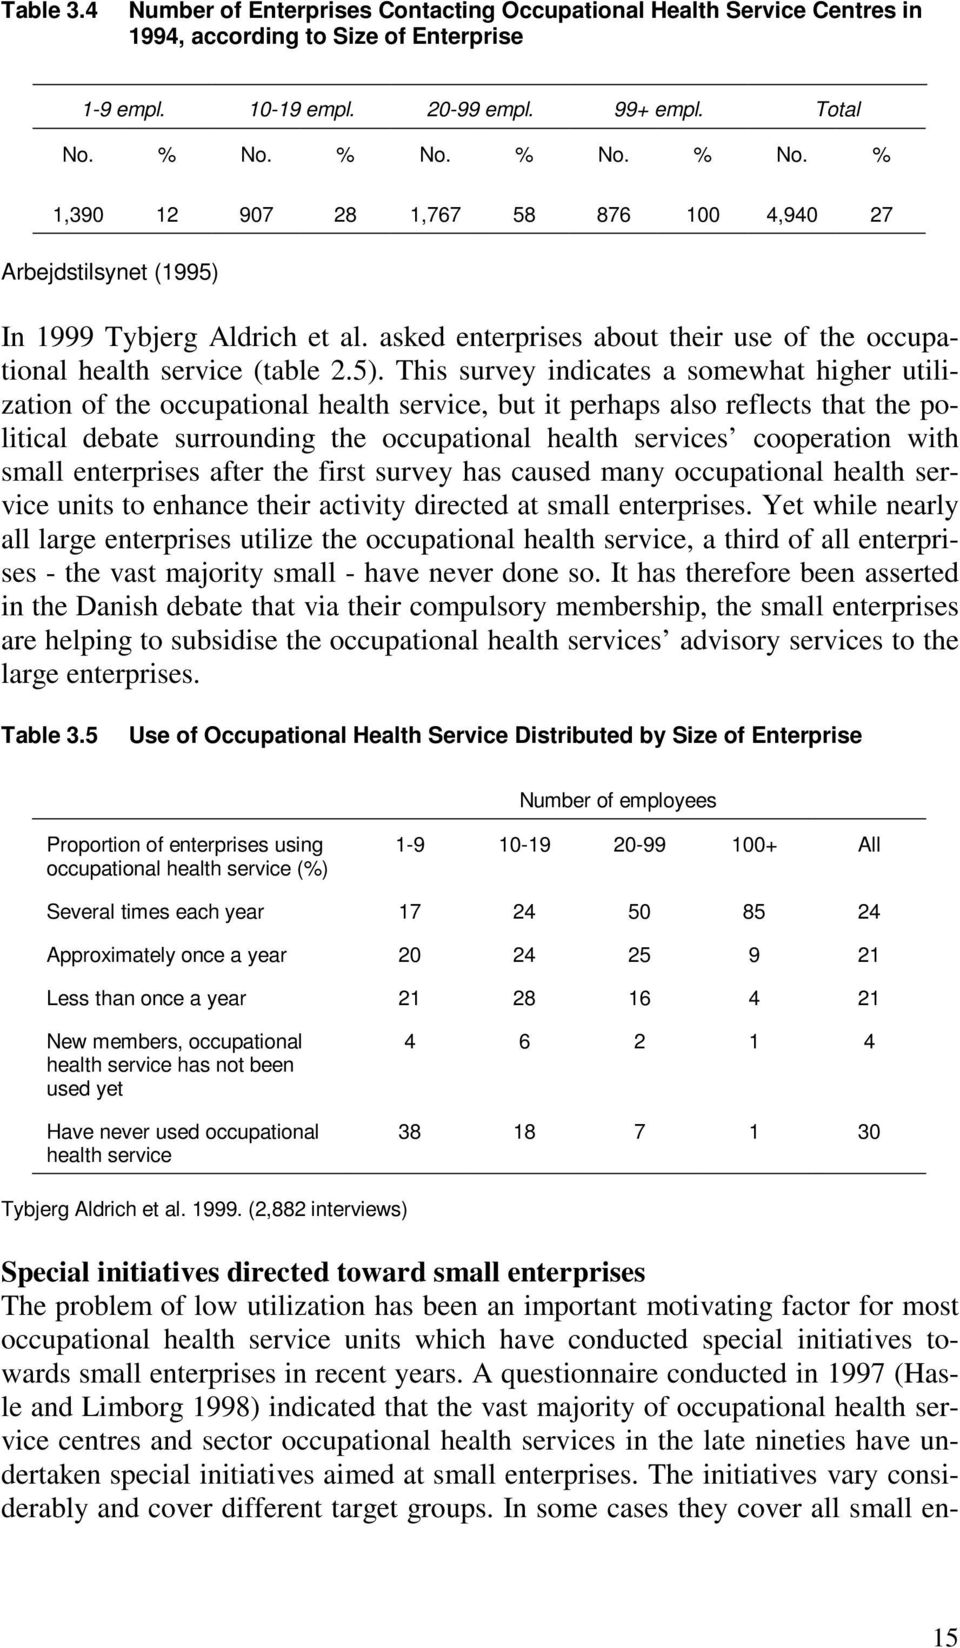 In 1999 Tybjerg Aldrich et al. asked enterprises about their use of the occupational health service (table 2.5).